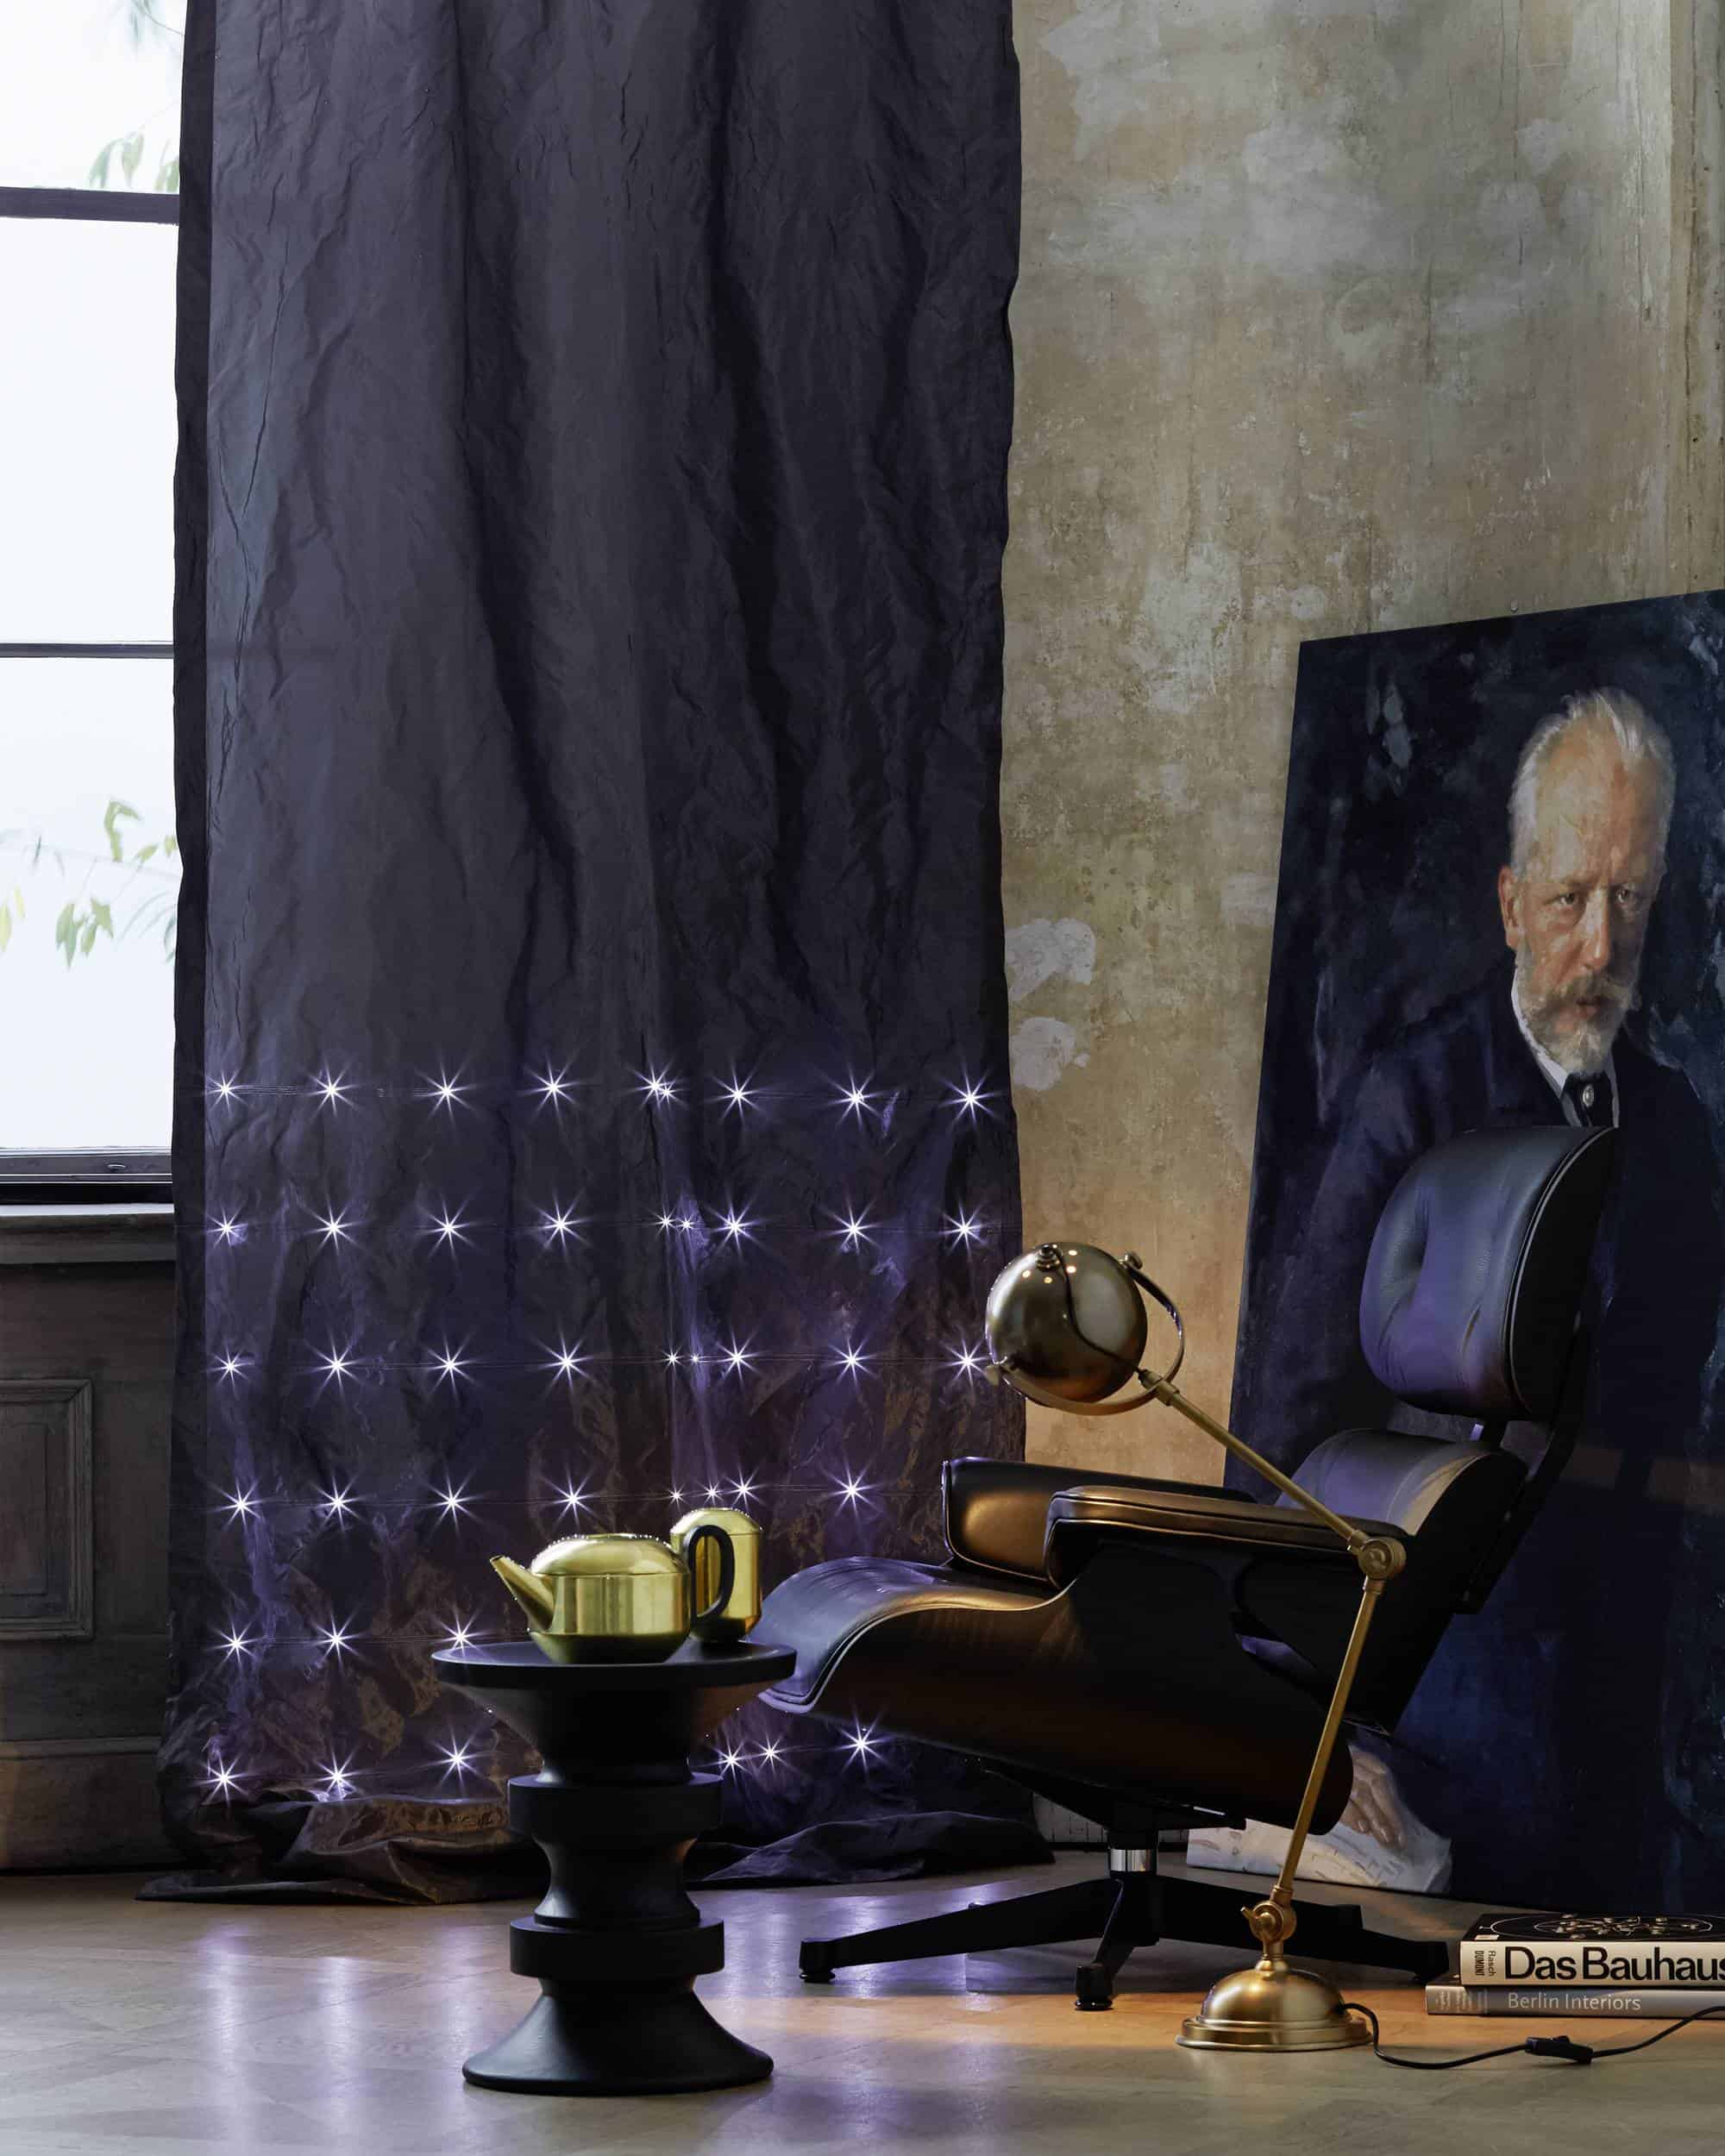 Curtains With LED Lights Take Window Coverings To New Level